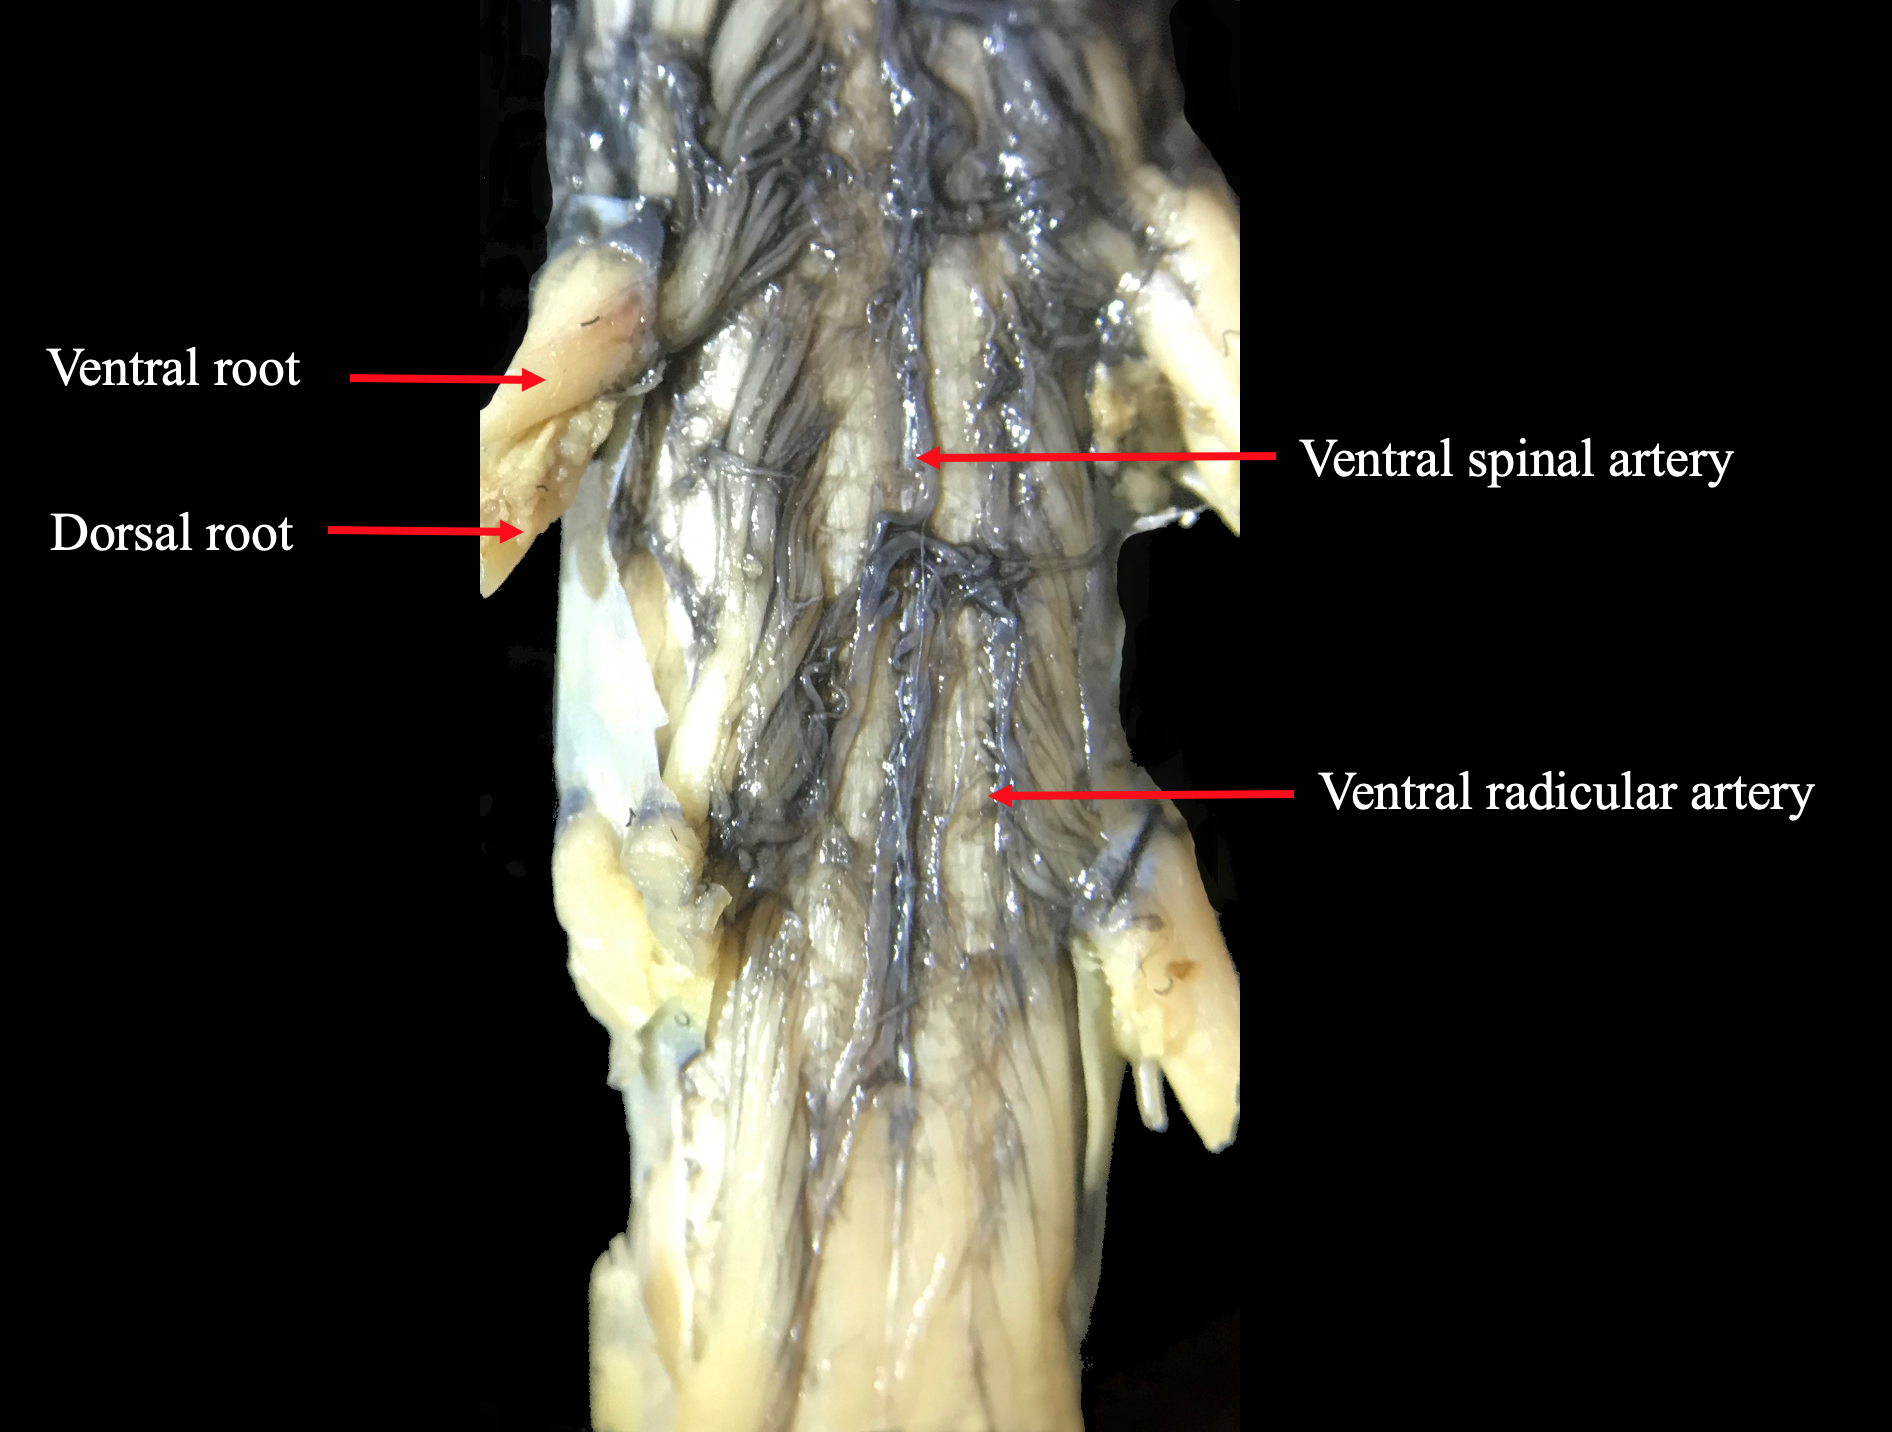 Ventral spinal artery